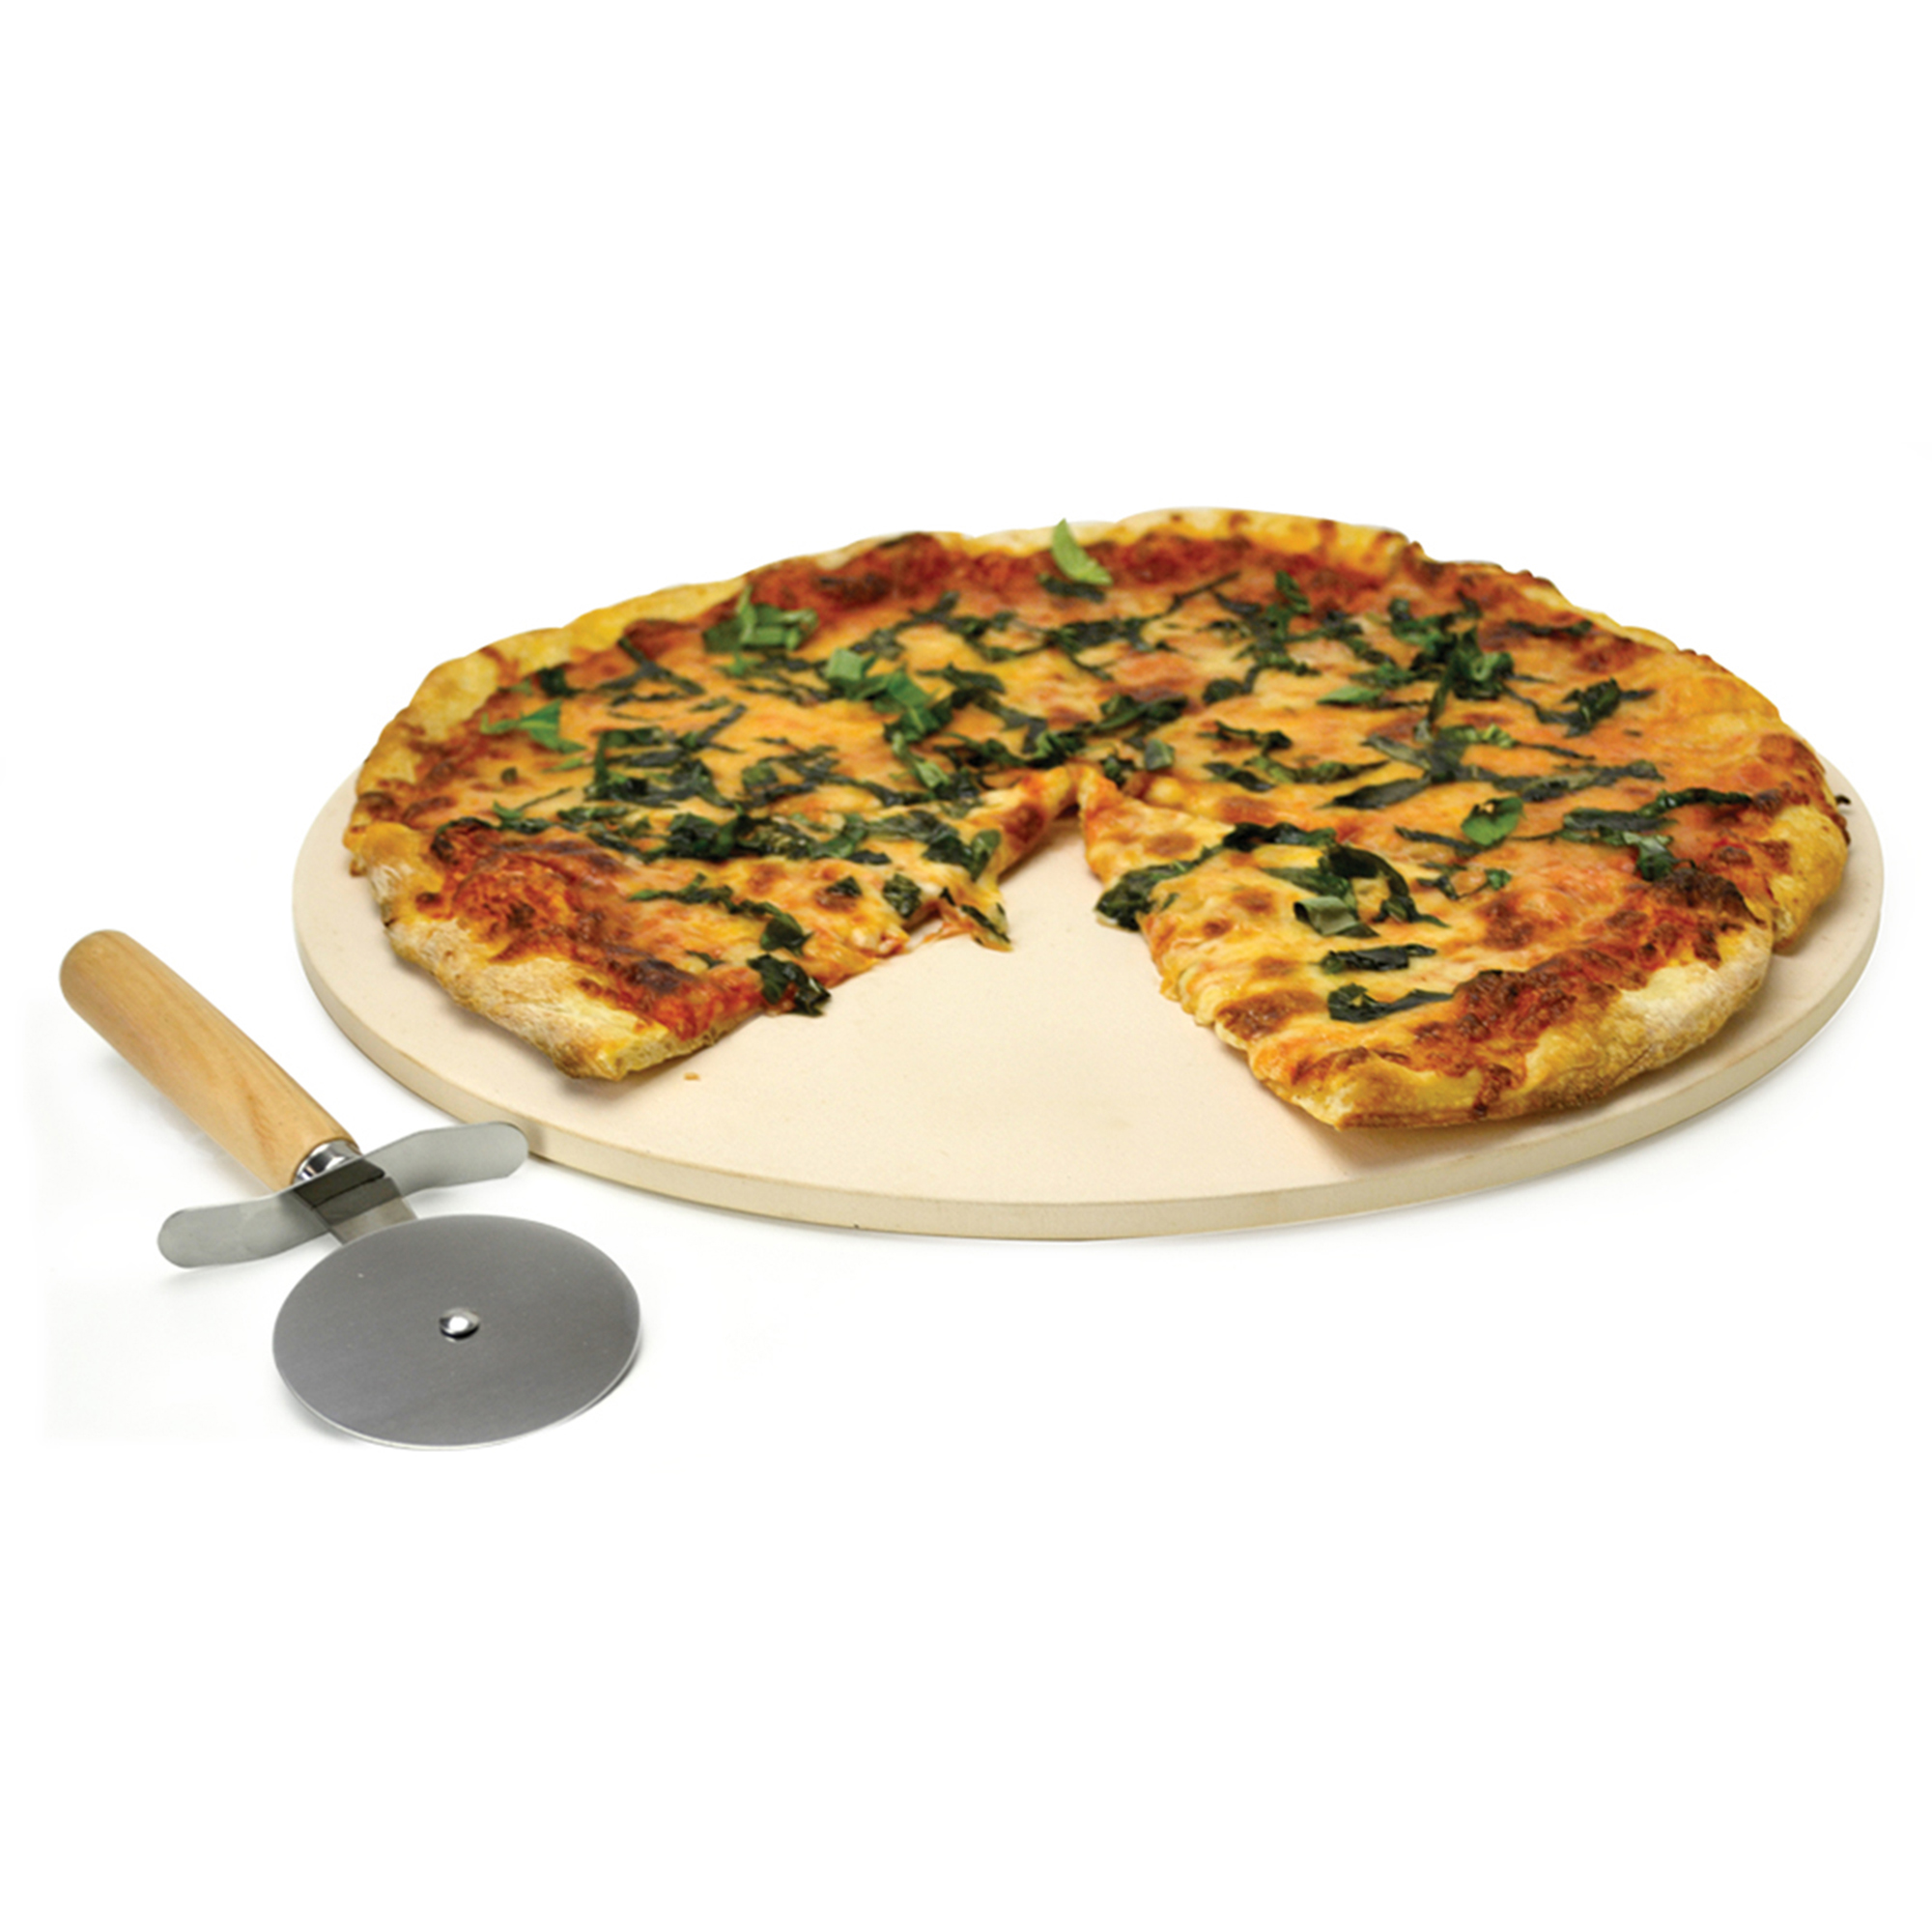 ECOLUTION EKCS0815 KITCHEN EXTRAS PIZZA STONE 15 INCH WITH